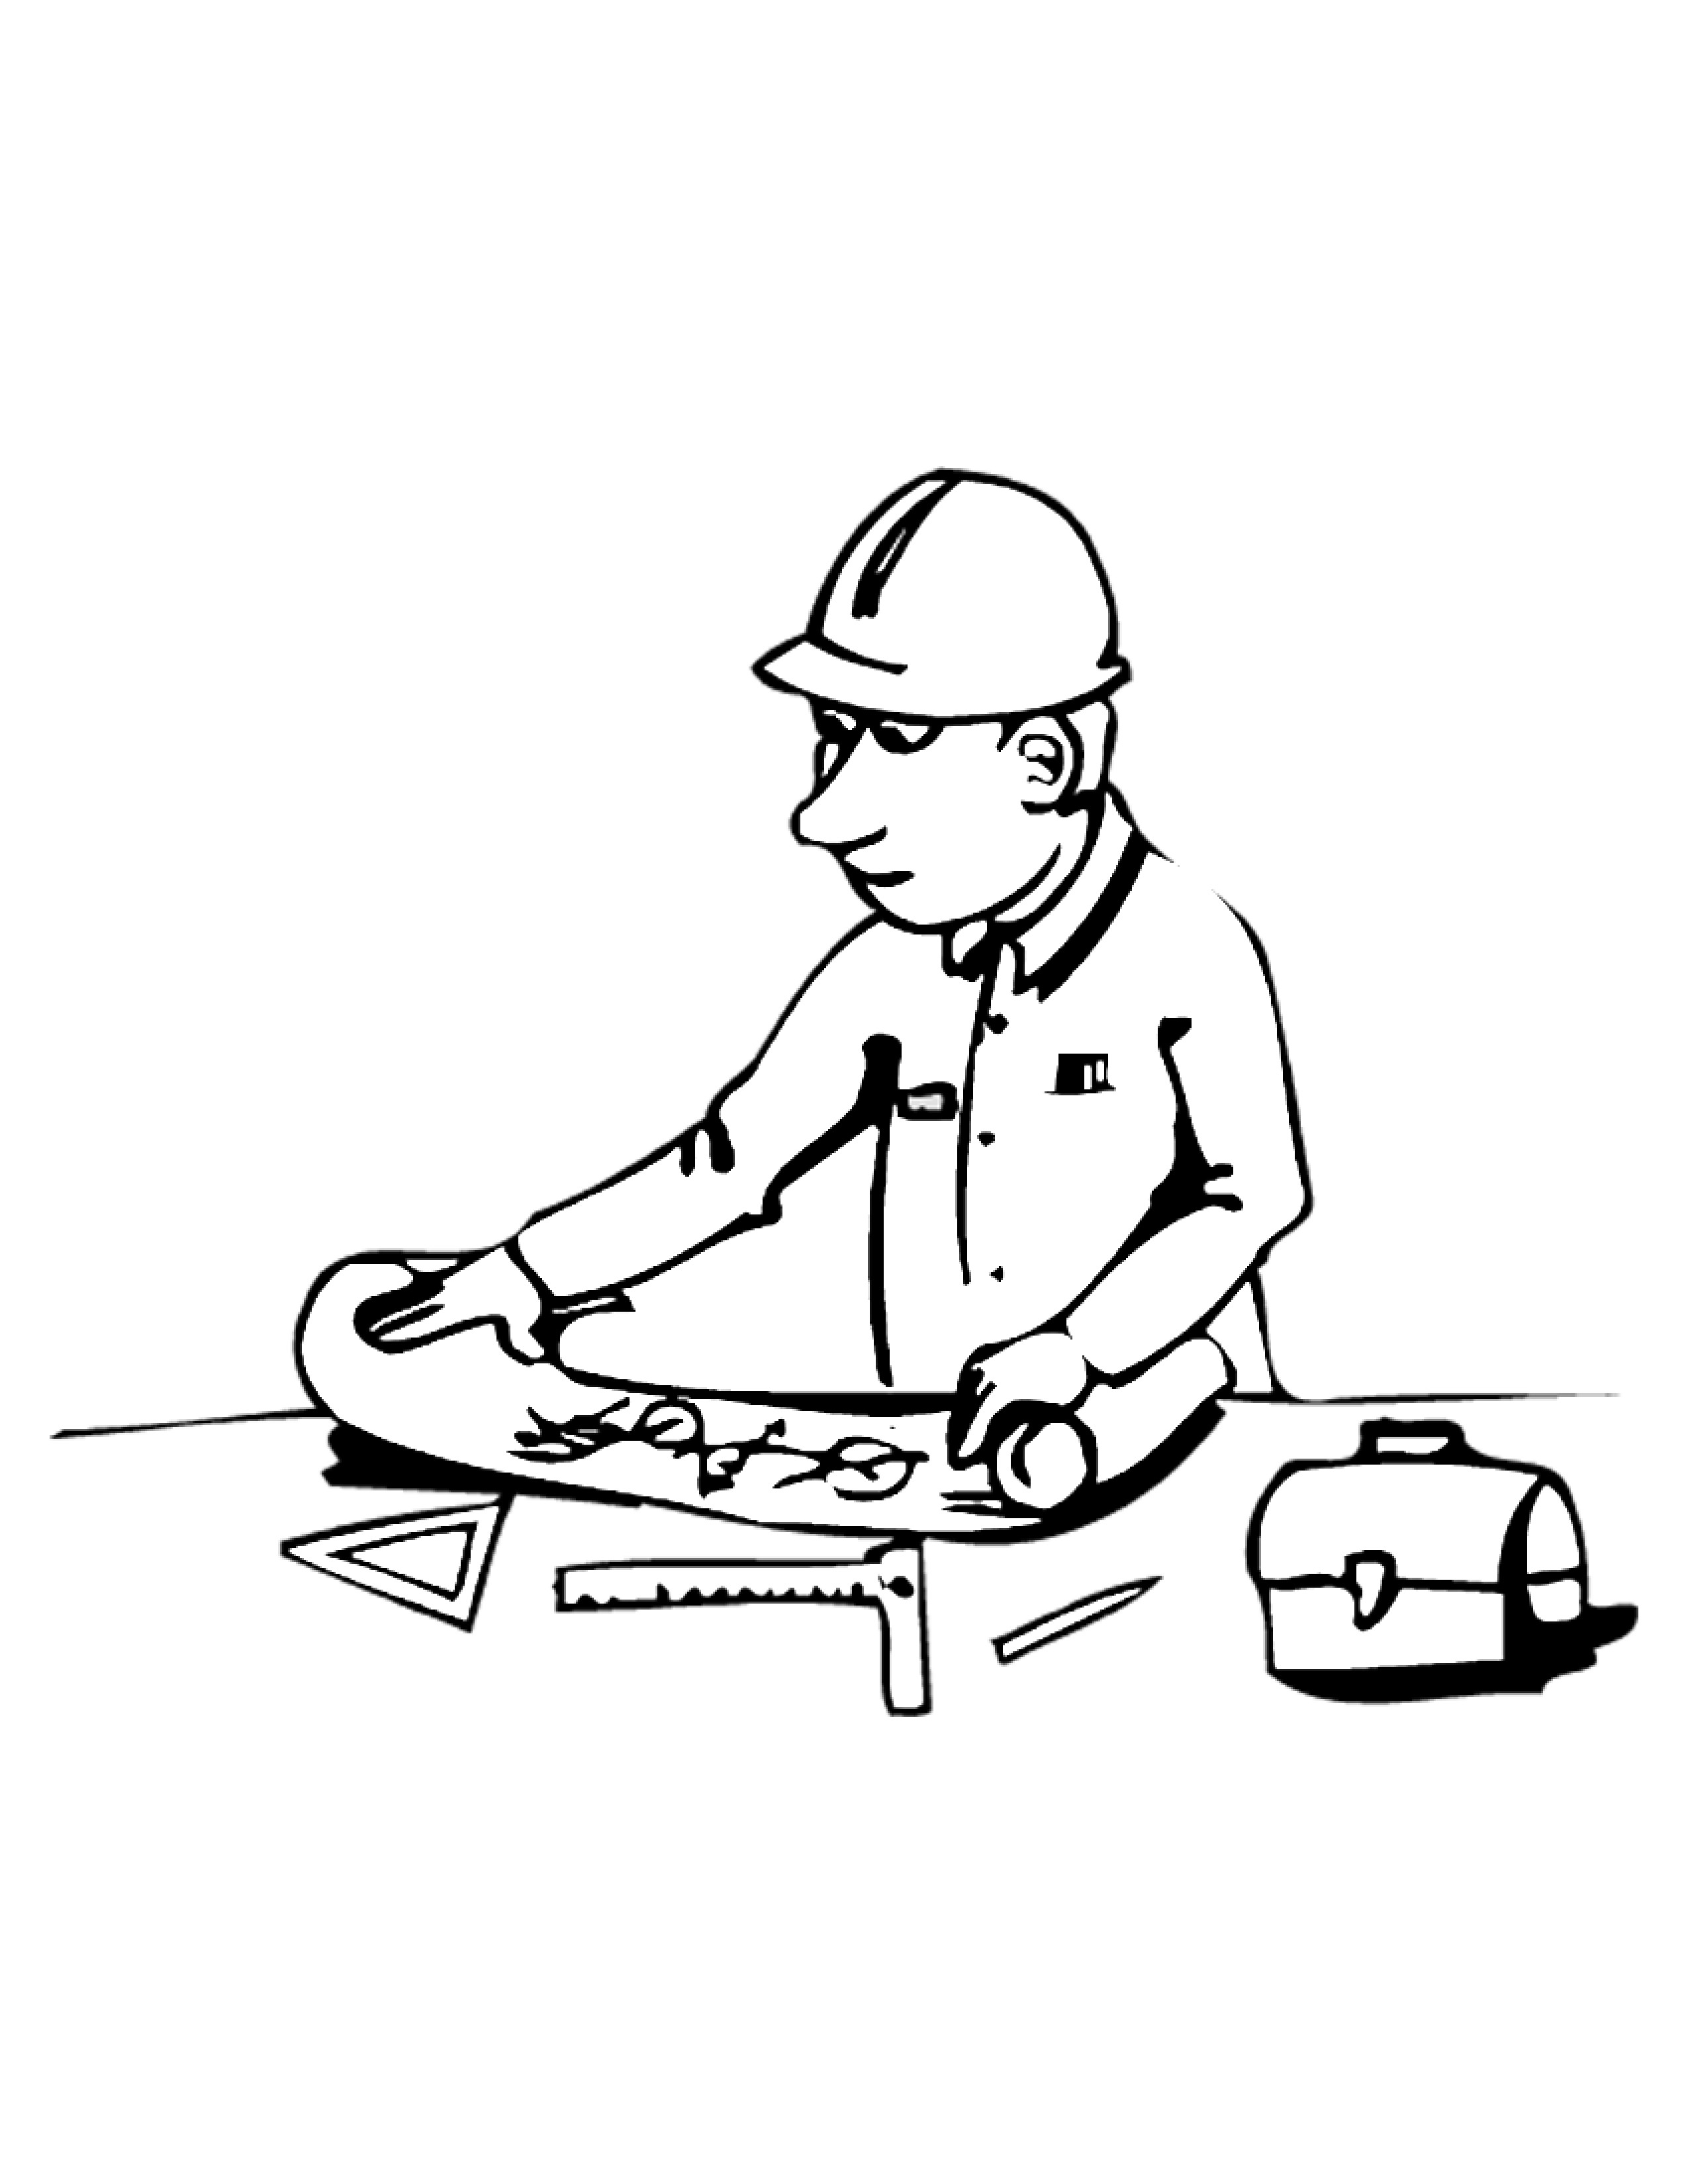 construction equipment coloring pages construction equipment free construction coloring pages coloring pages equipment construction